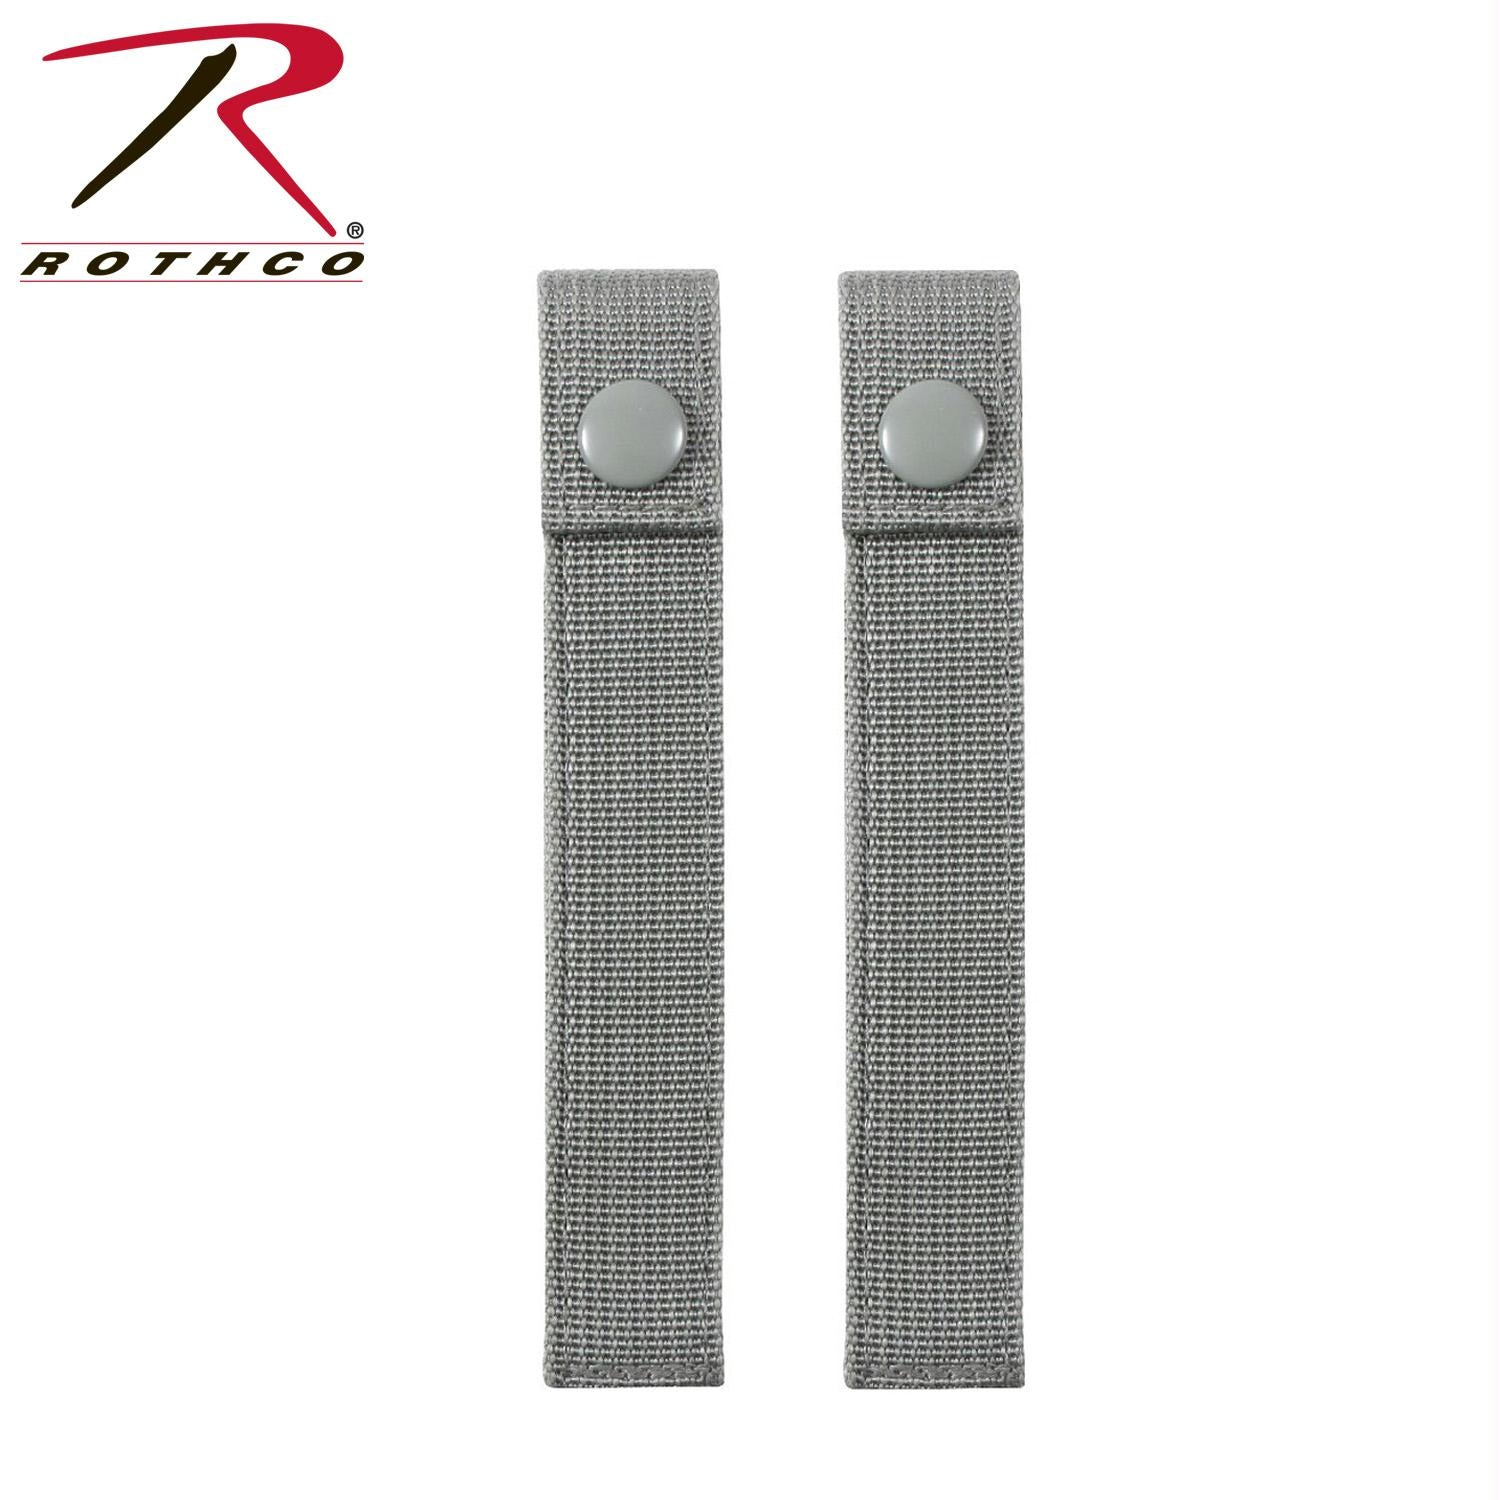 Rothco MOLLE Replacement Straps